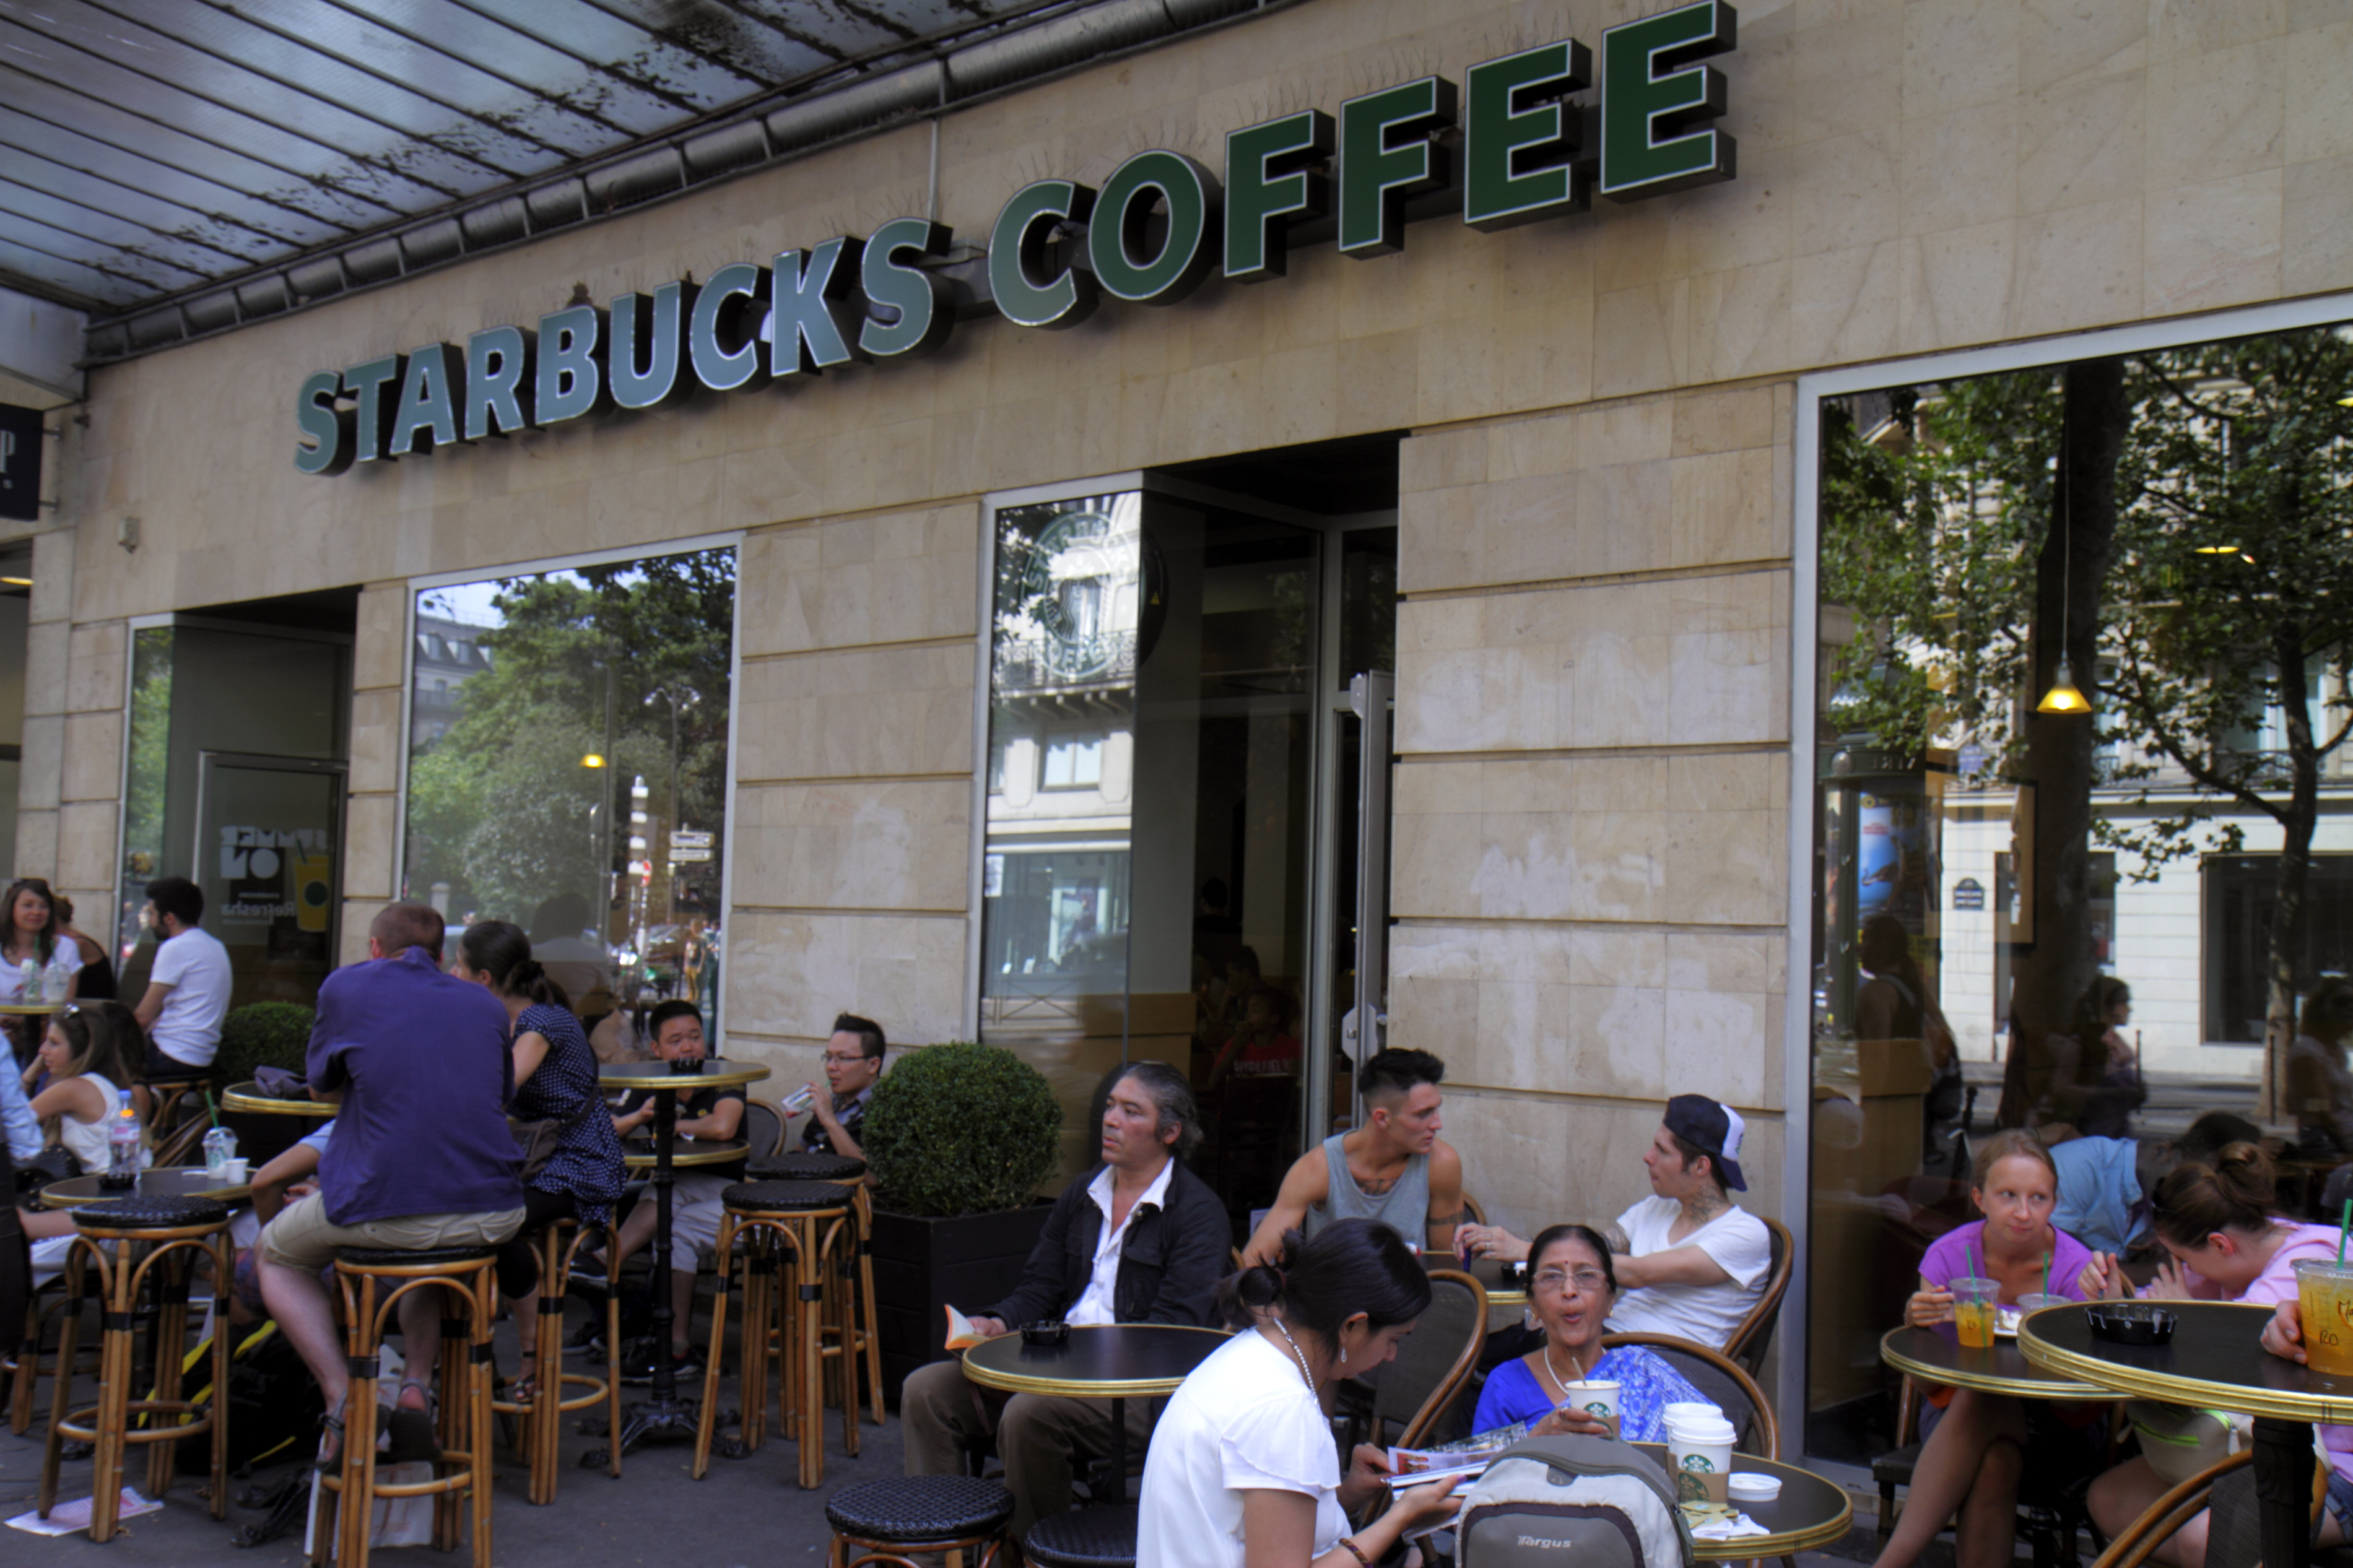 Paris, Boulevard de SŽbastopol Starbucks Coffee tables chairs customers alfresco